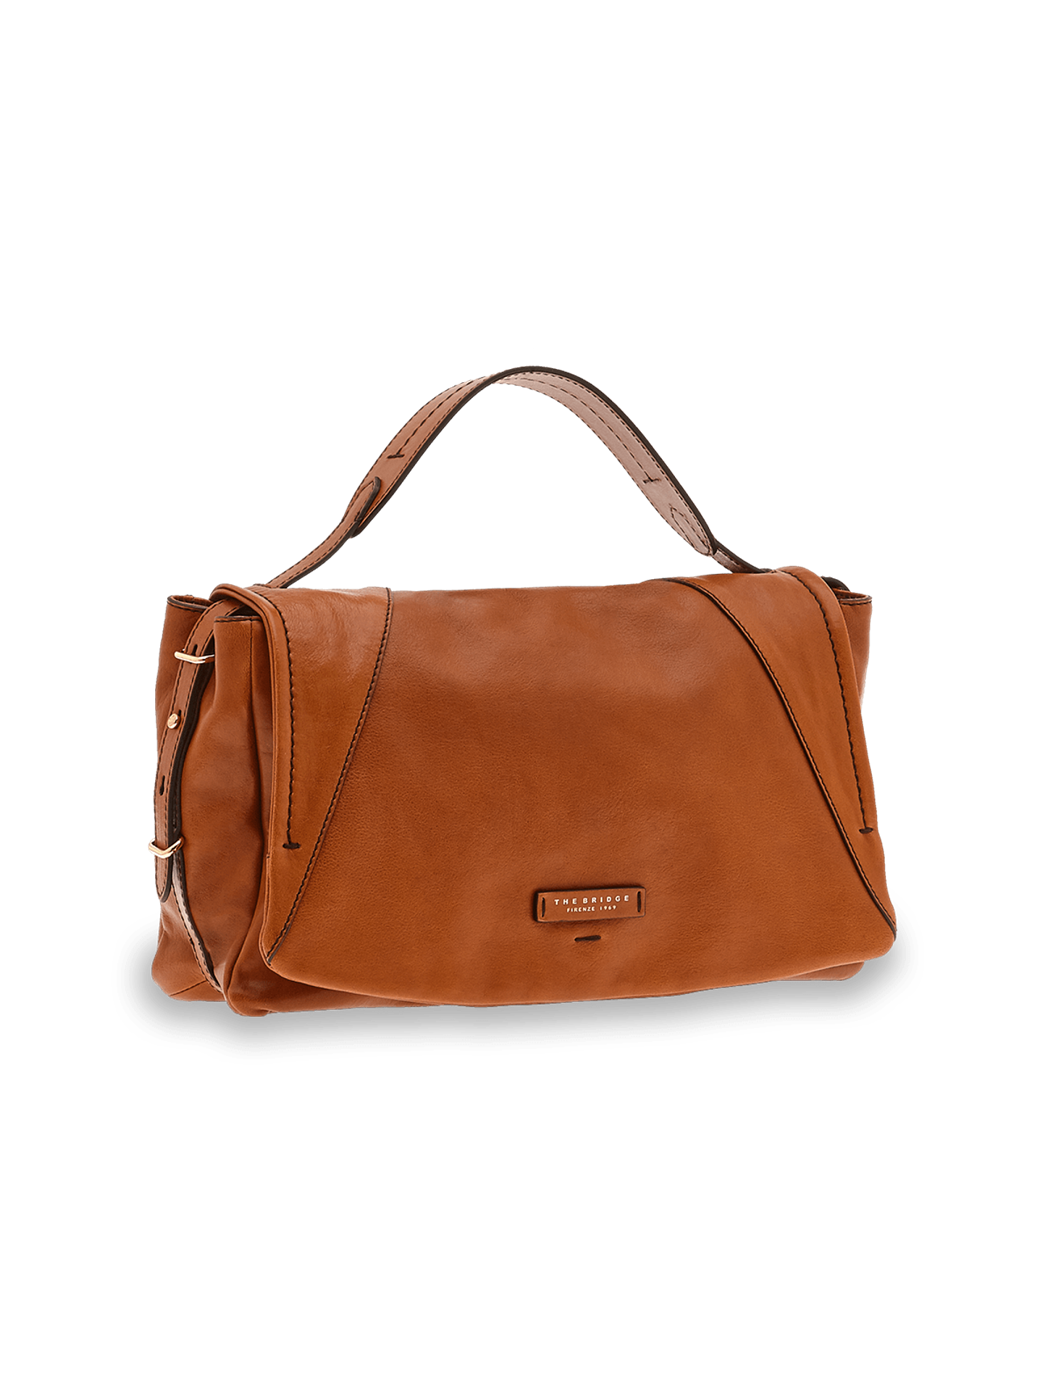 THE BRIDGE SATCHEL BAG